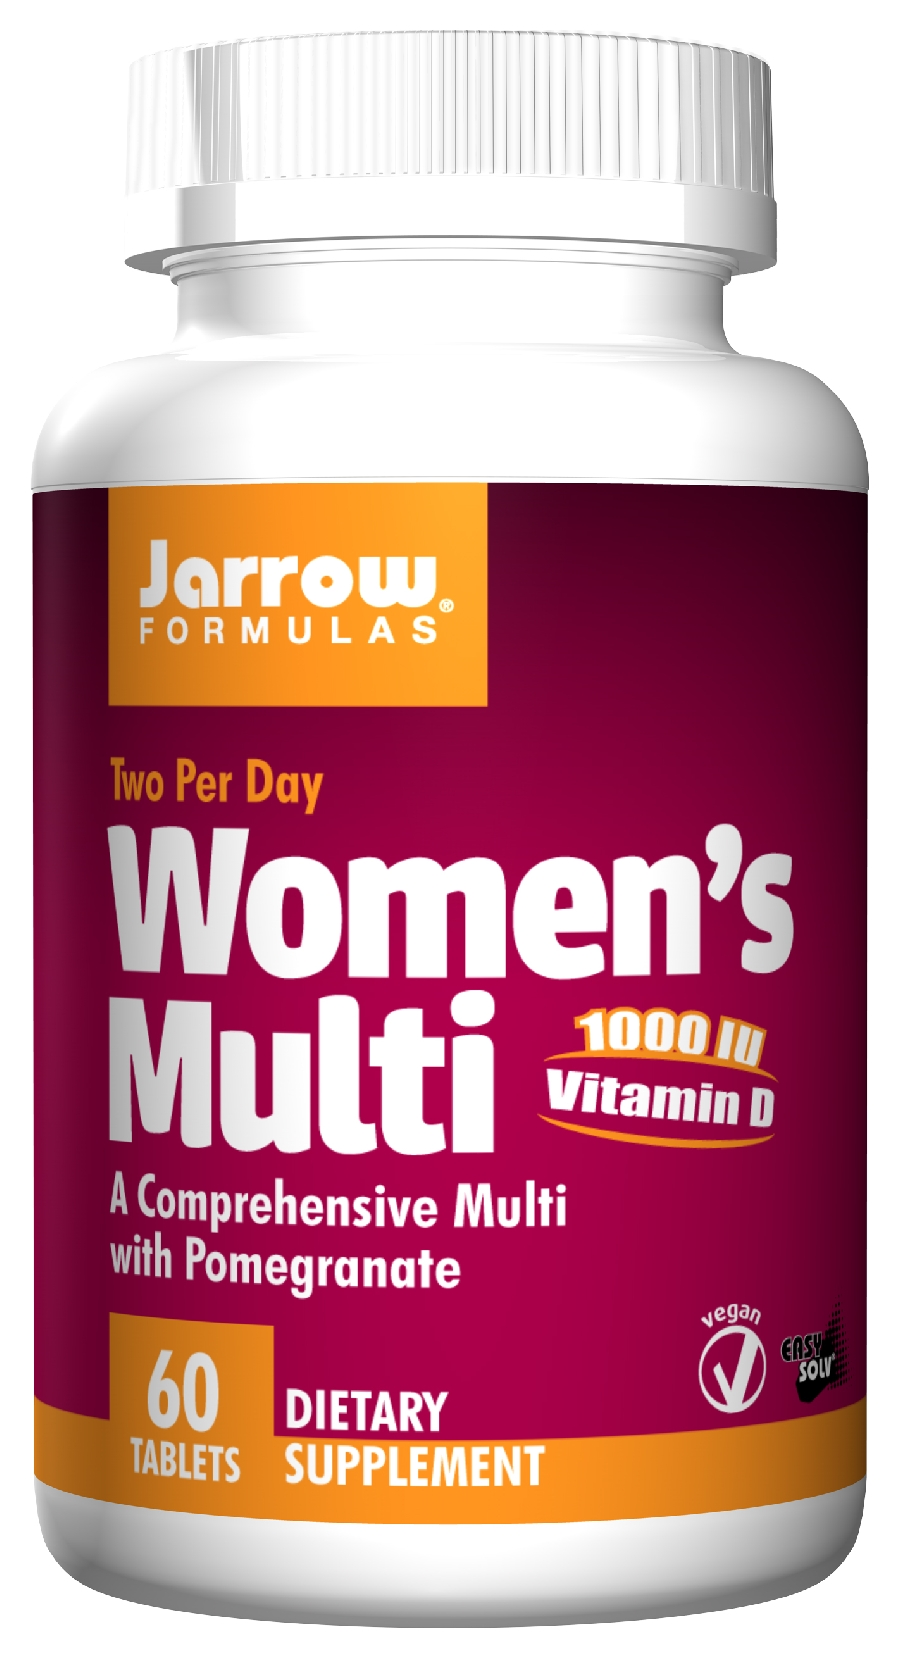 Women's Multi 60 Easy-Solv tabs by Jarrow Formulas